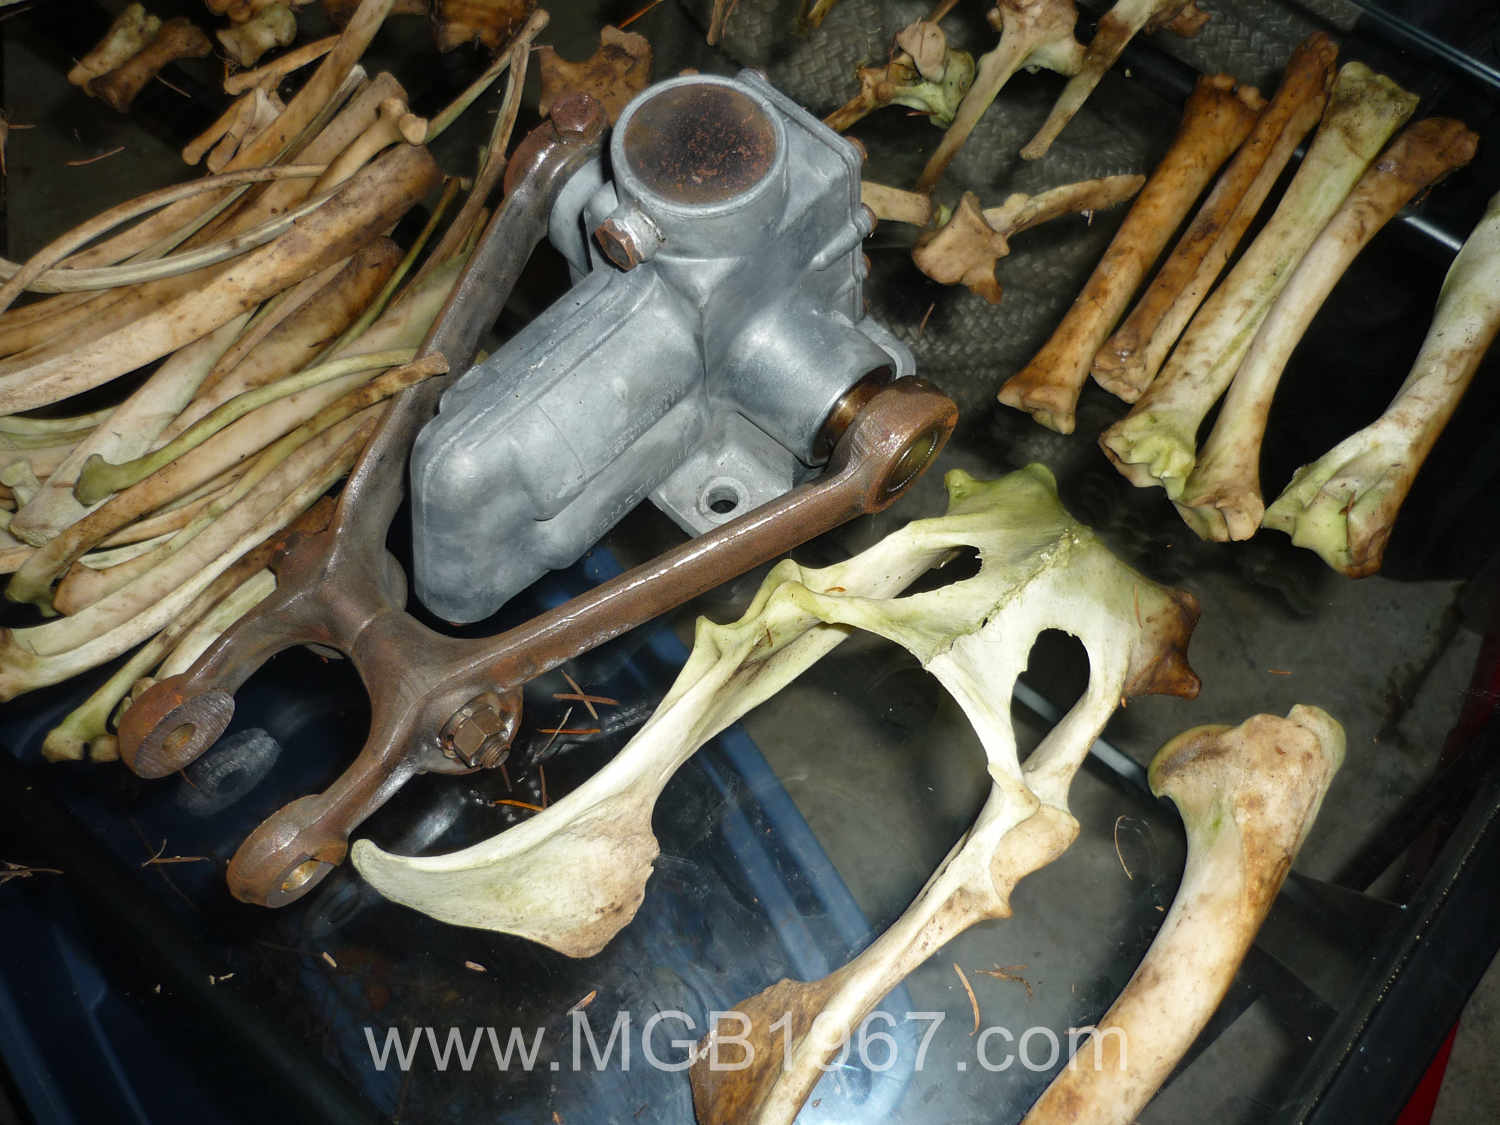 White tail deer bones